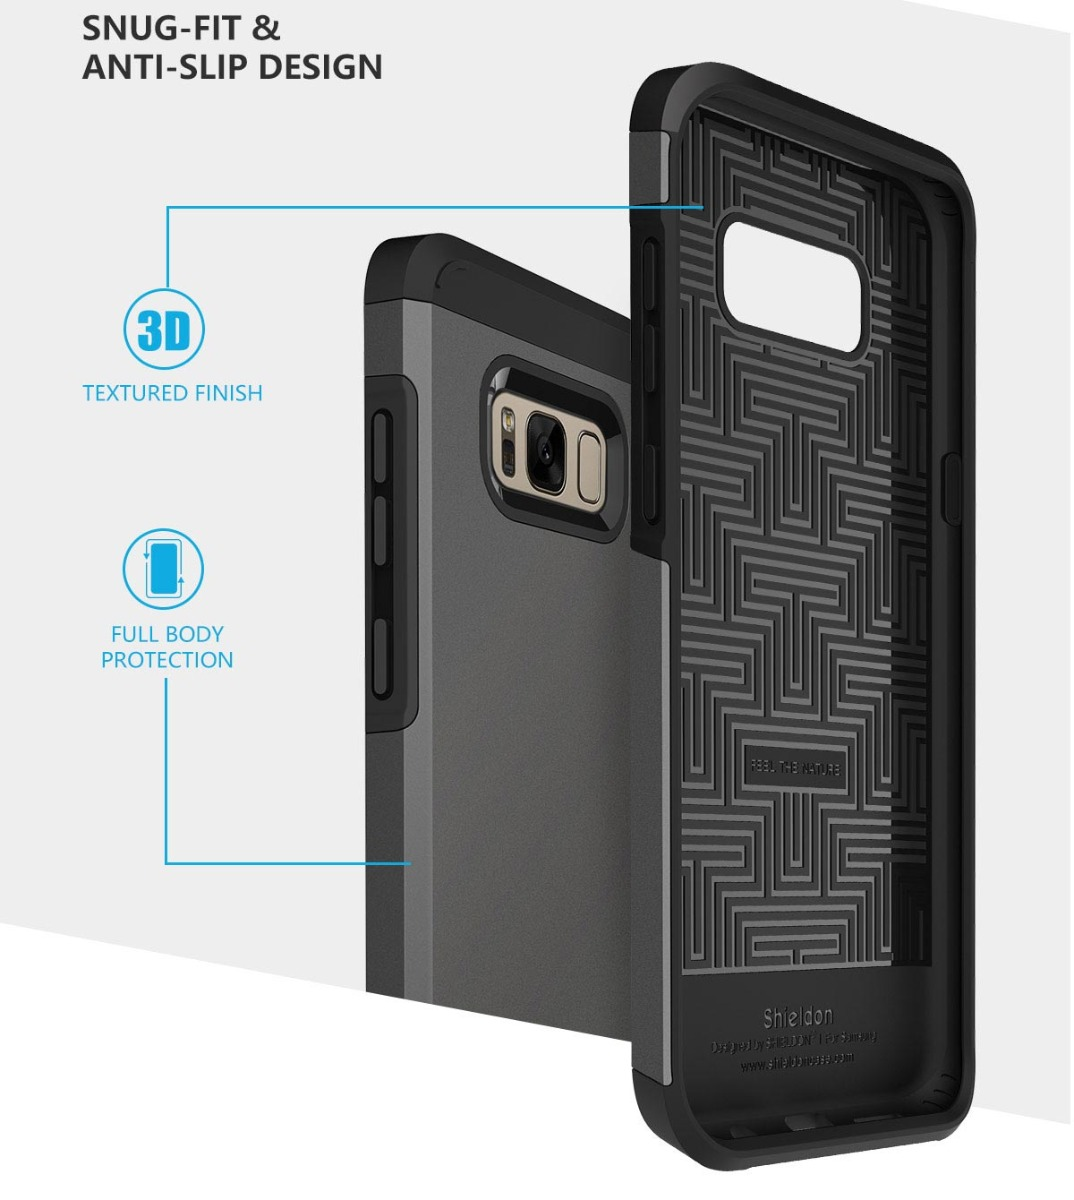 SHIELDON Galaxy S8 Drop Protection Case